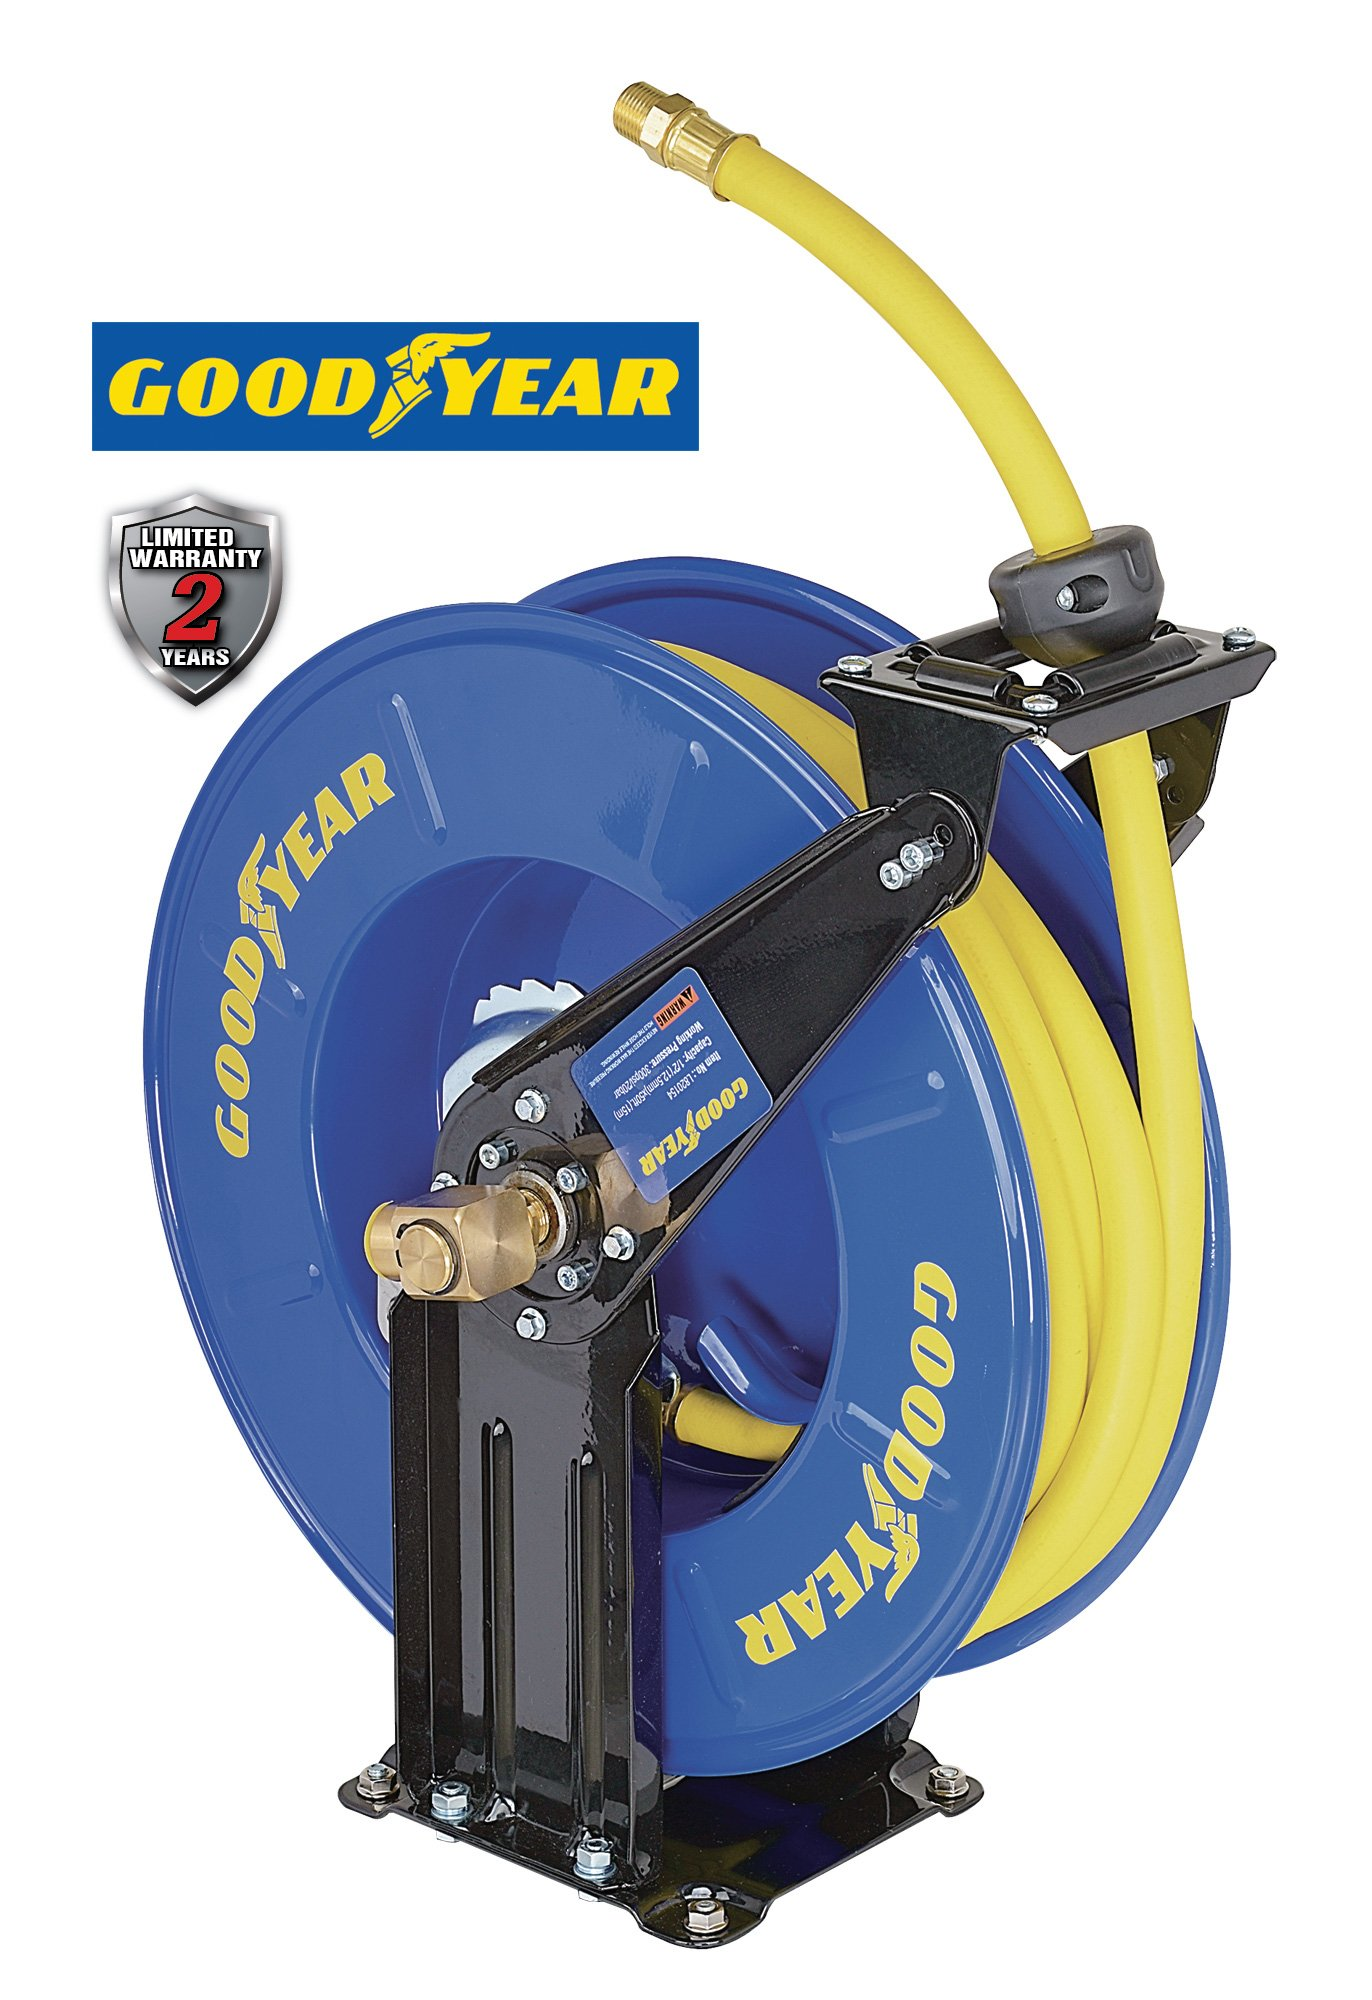 Goodyear Steel Retractable Air Compressor/Water Hose Reel with 1/2 in. x 50 ft. Rubber Hose, Max. 300PSI by Goodyear